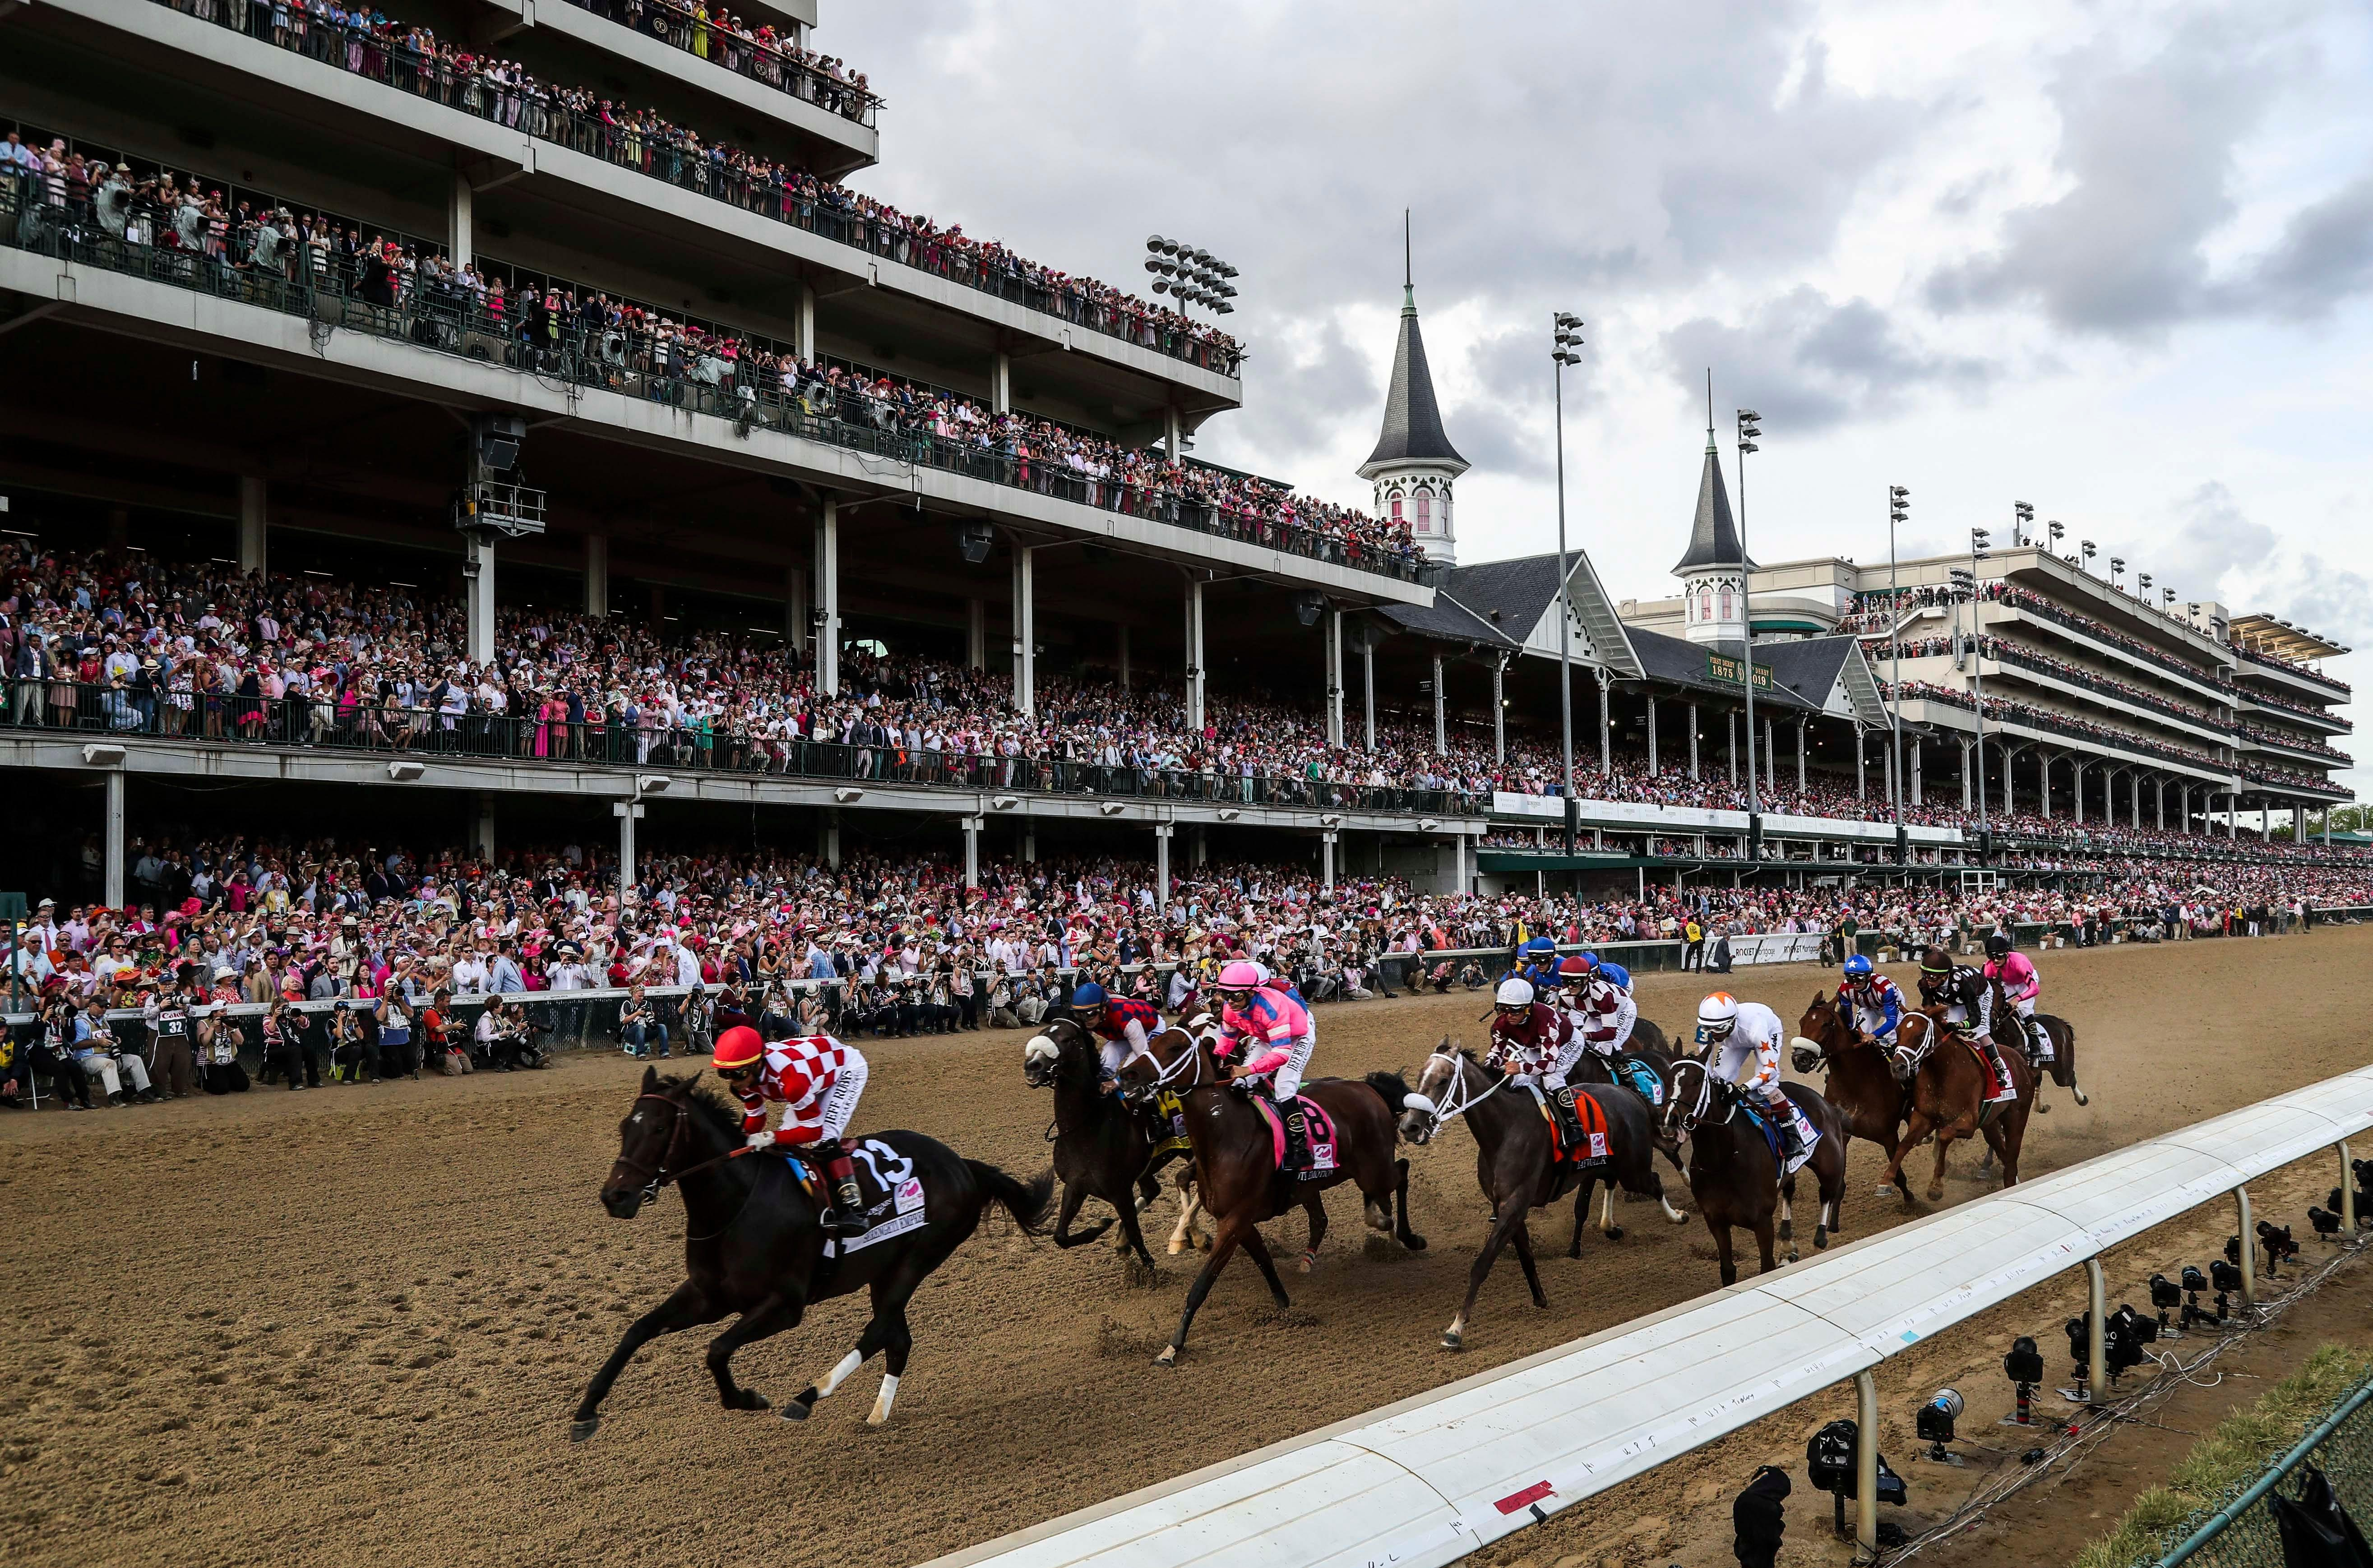 Kentucky Oaks' field set with Gamine, Swiss Skydiver favored in Friday's race at Churchill Downs